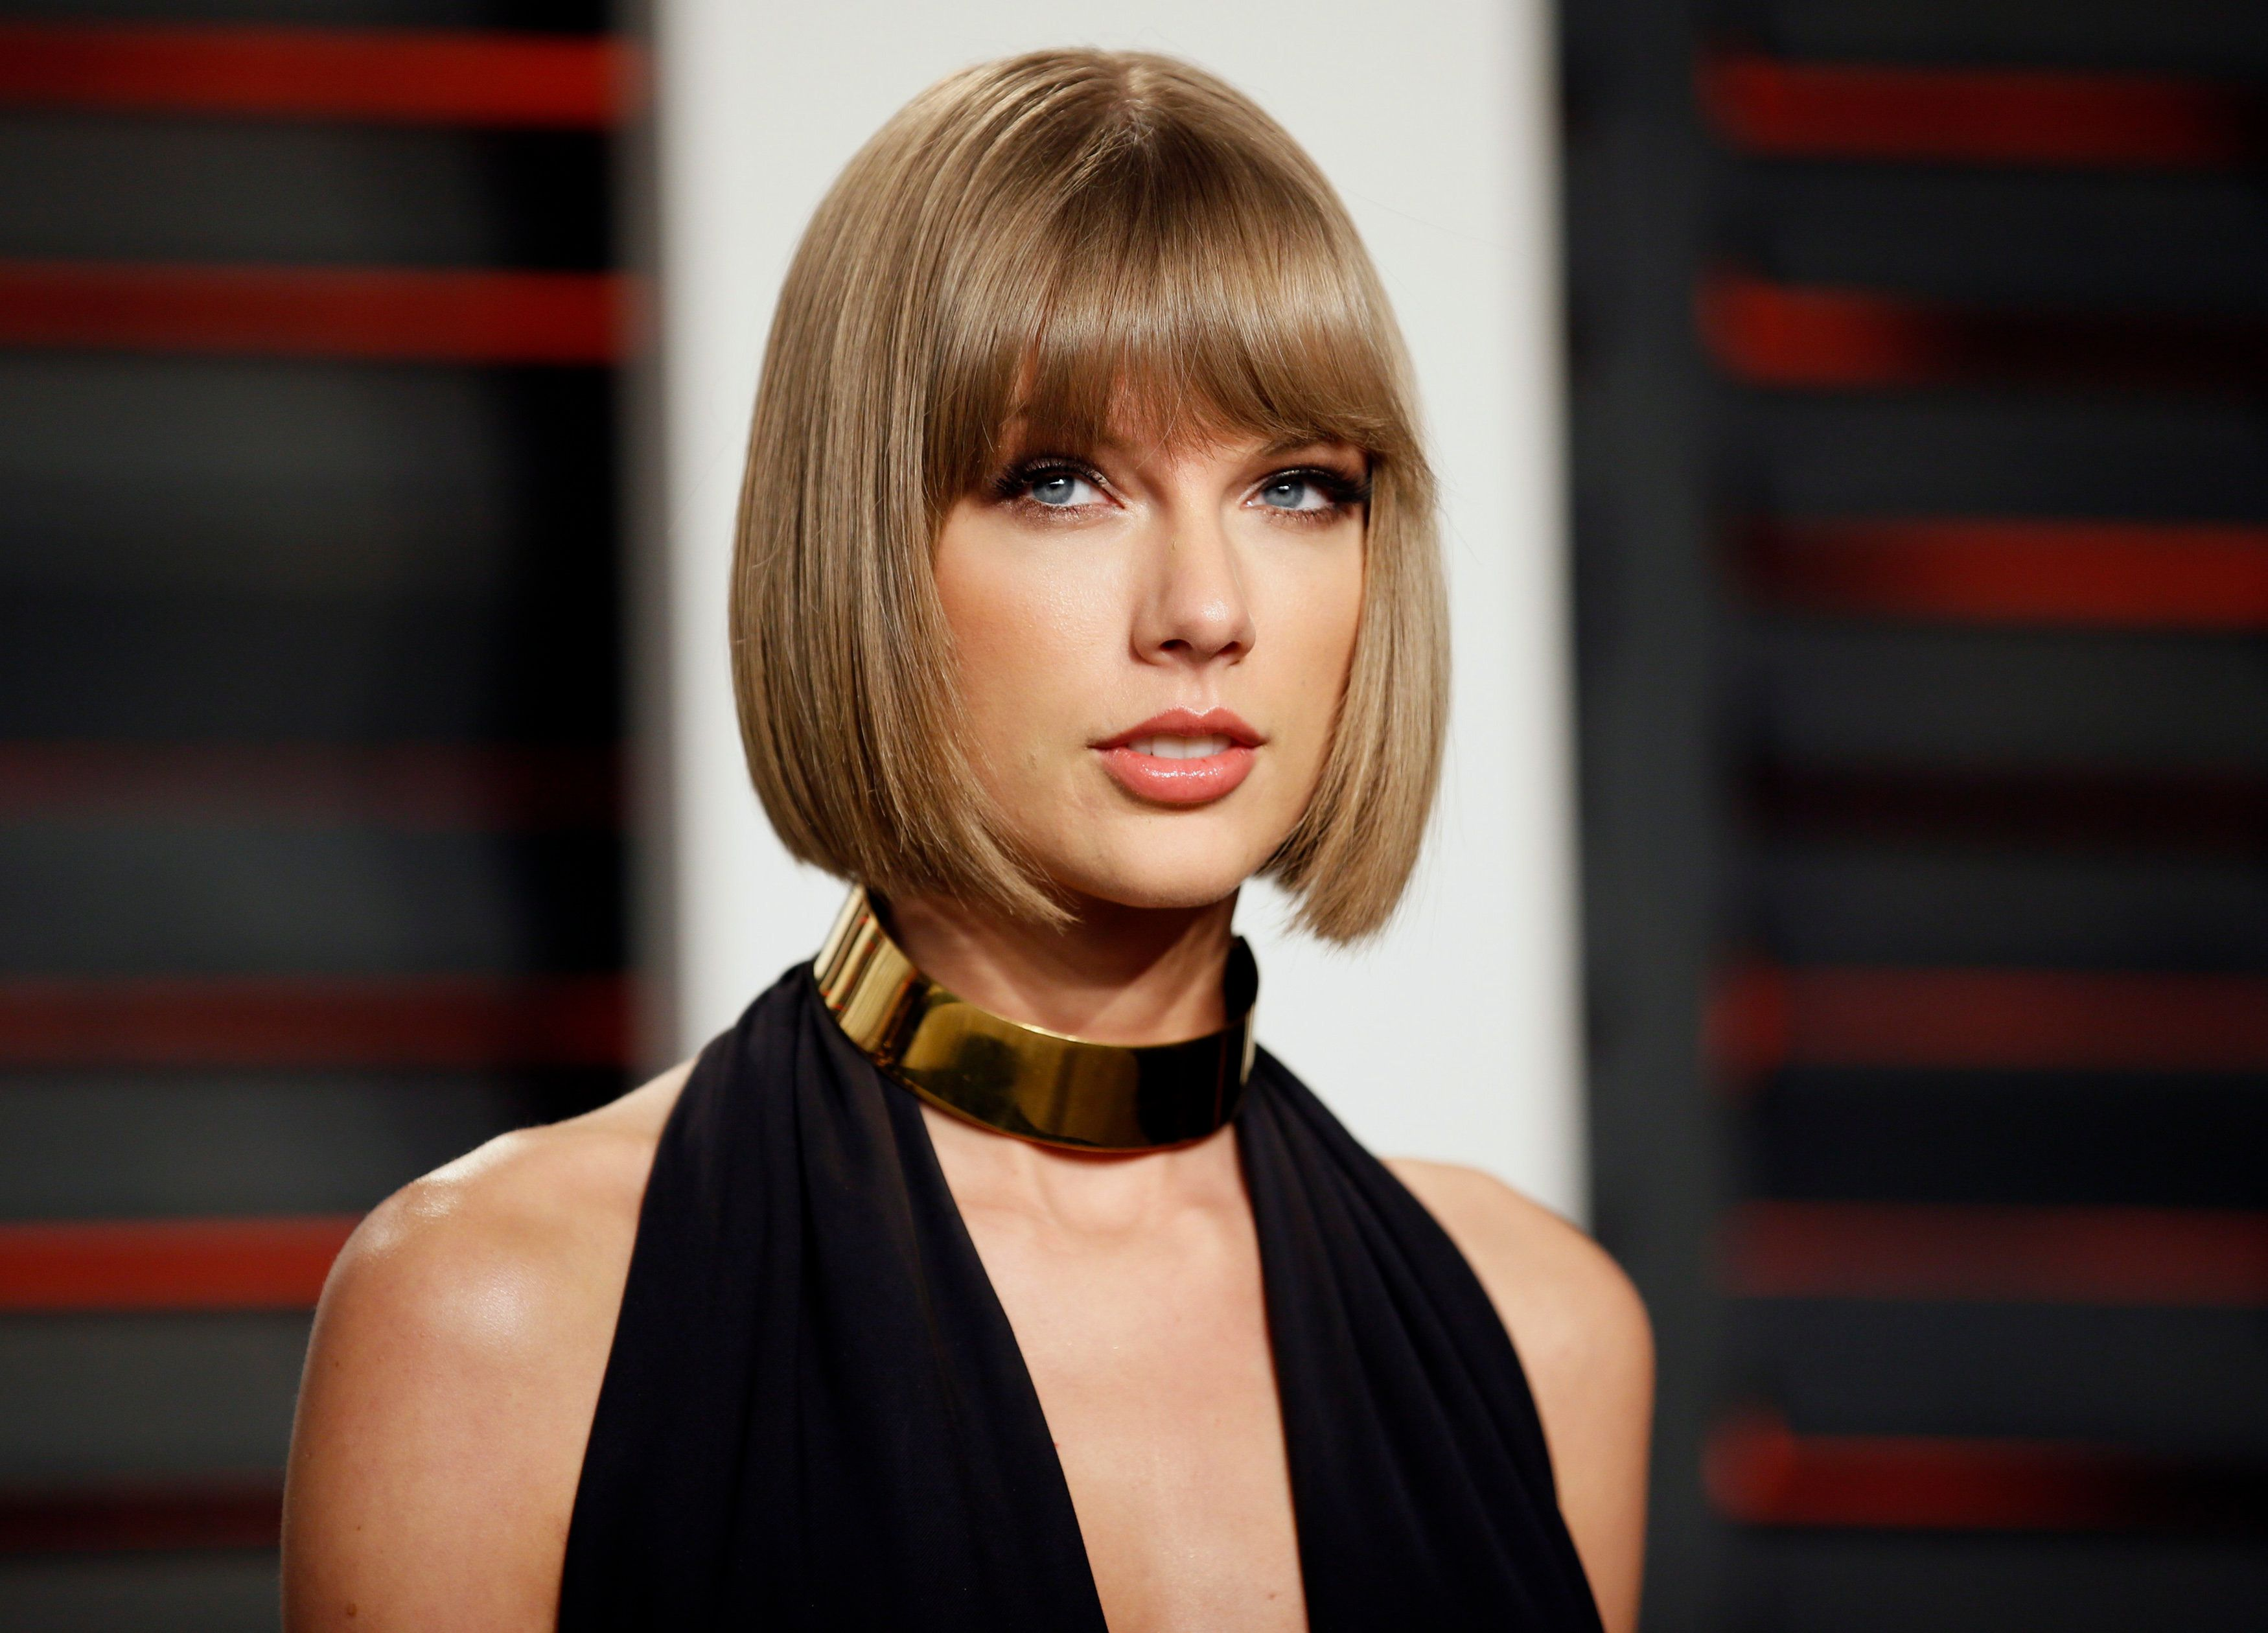 Judge Throws Out Fired DJ's Suit Against Taylor